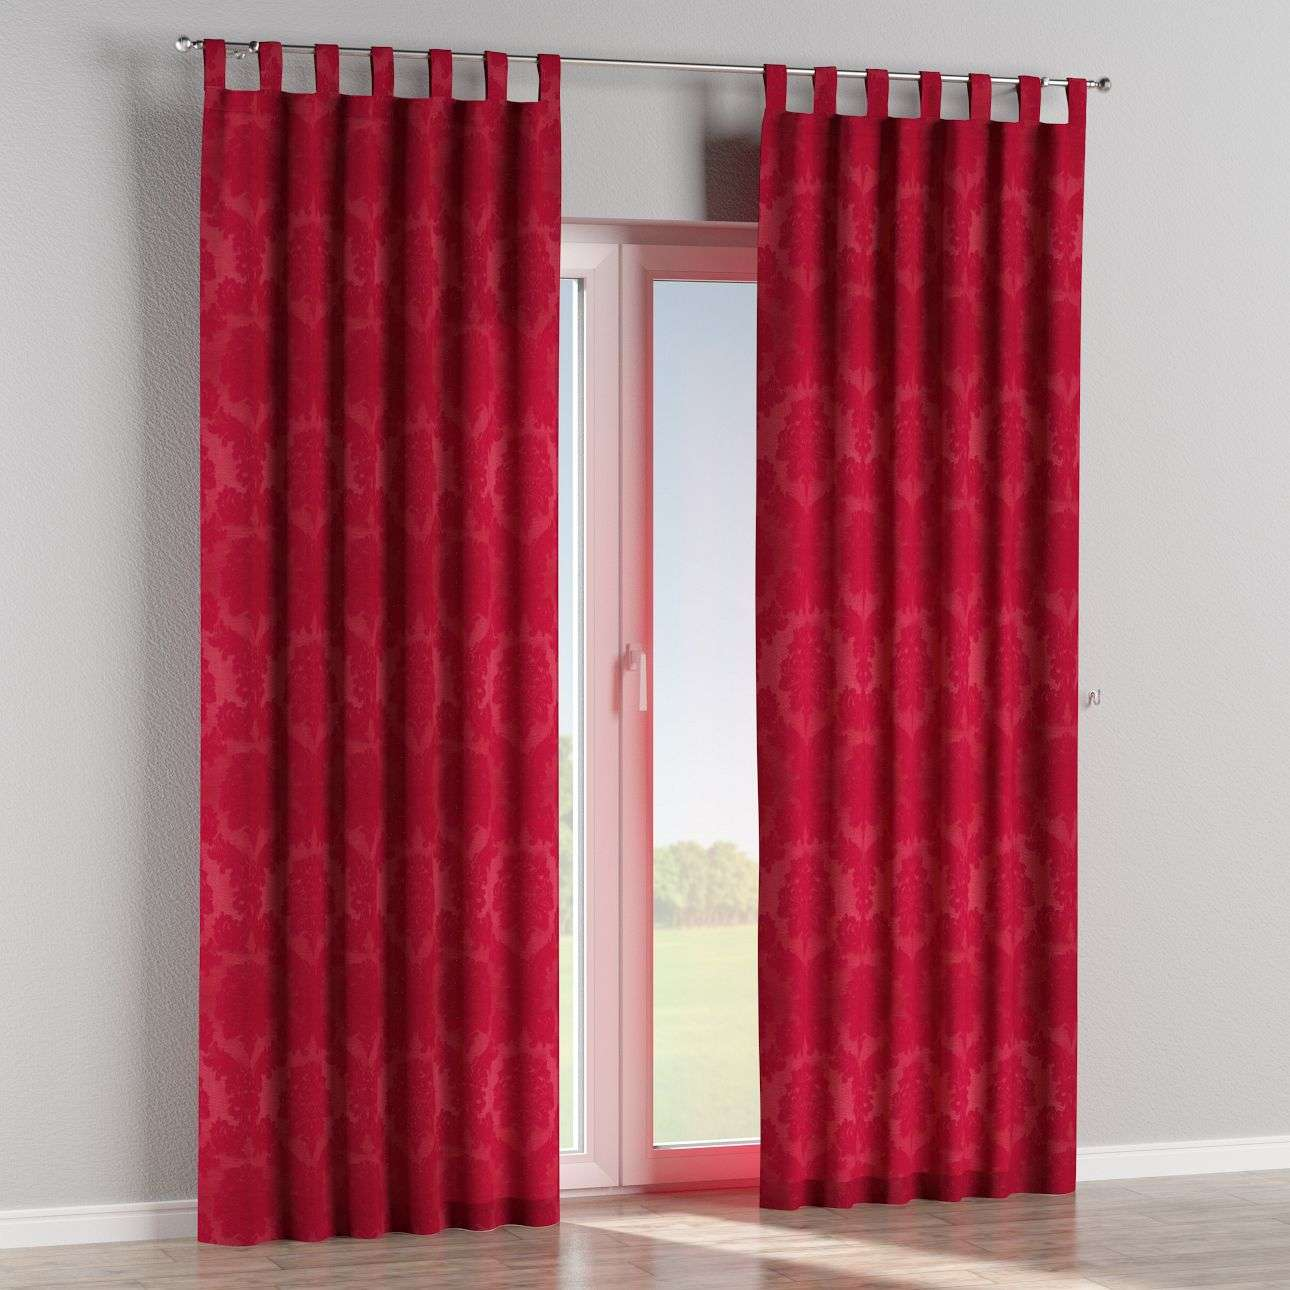 Tab top curtains in collection Damasco, fabric: 613-13